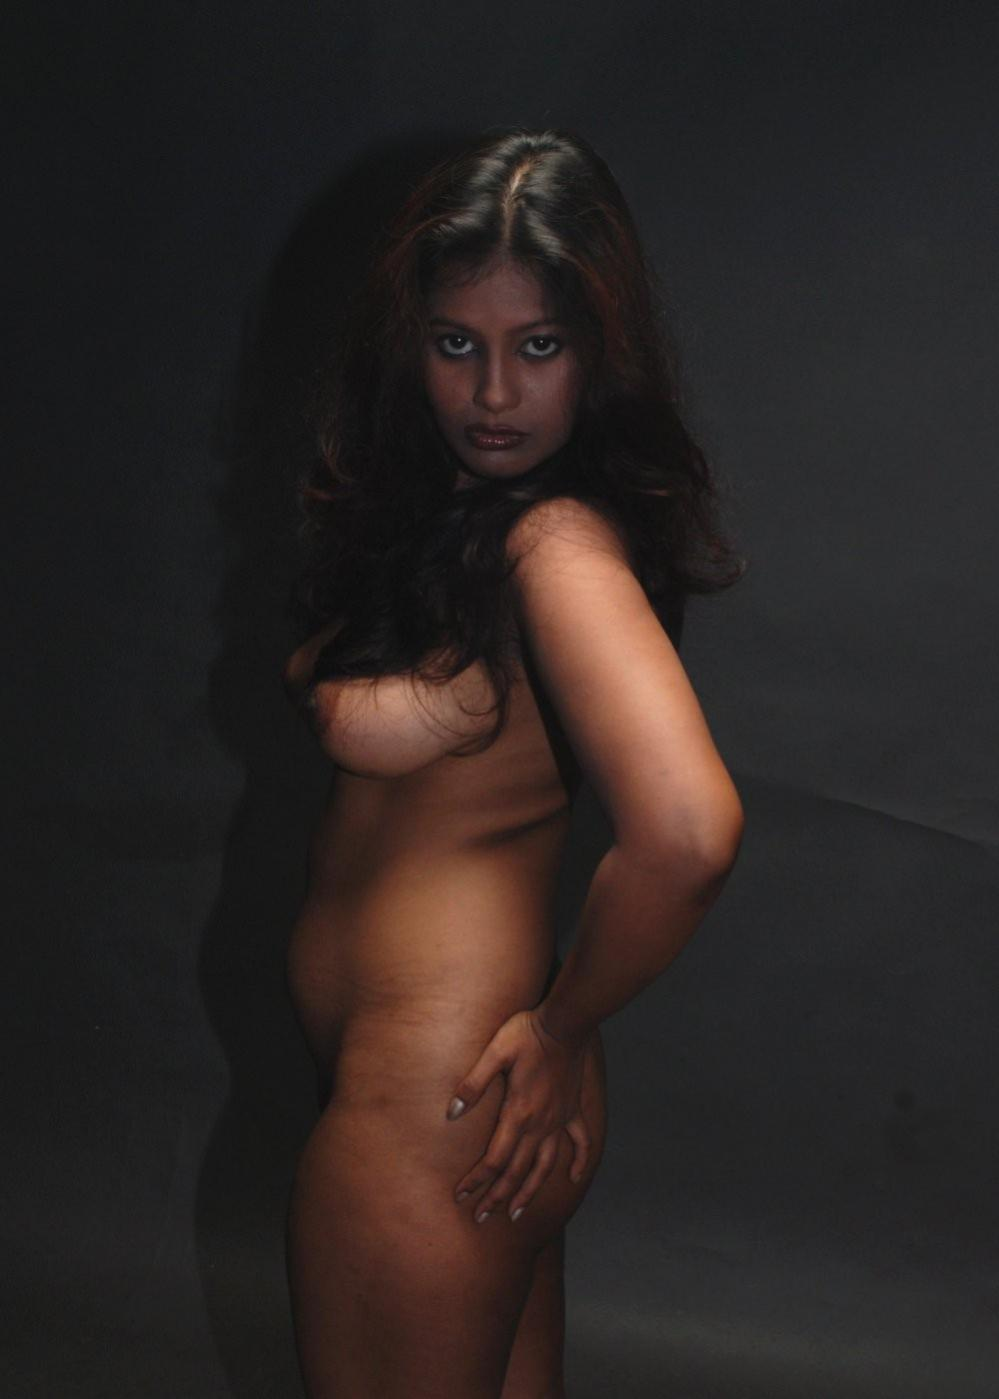 Indian naked women in night exploited photos